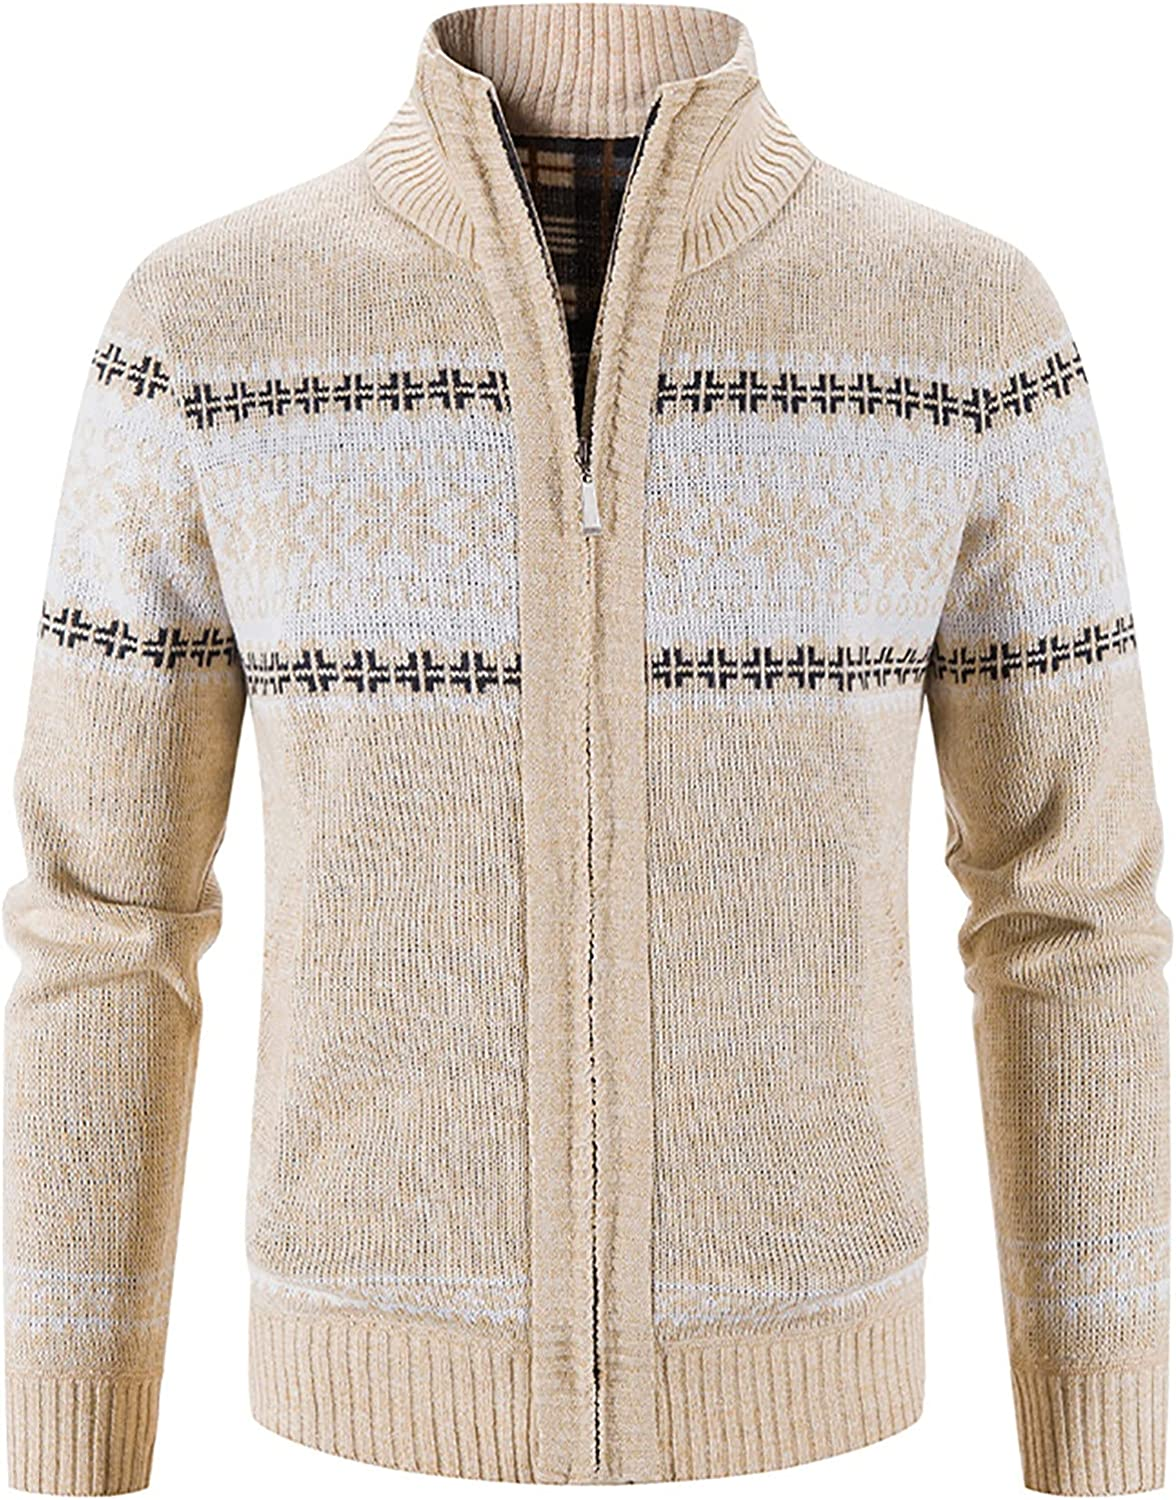 Men's Thick Sweater Cardigan - Printed Warm Fleece Lined Coat Jacket - Stand Collar Zip Up Knitted Cardigan